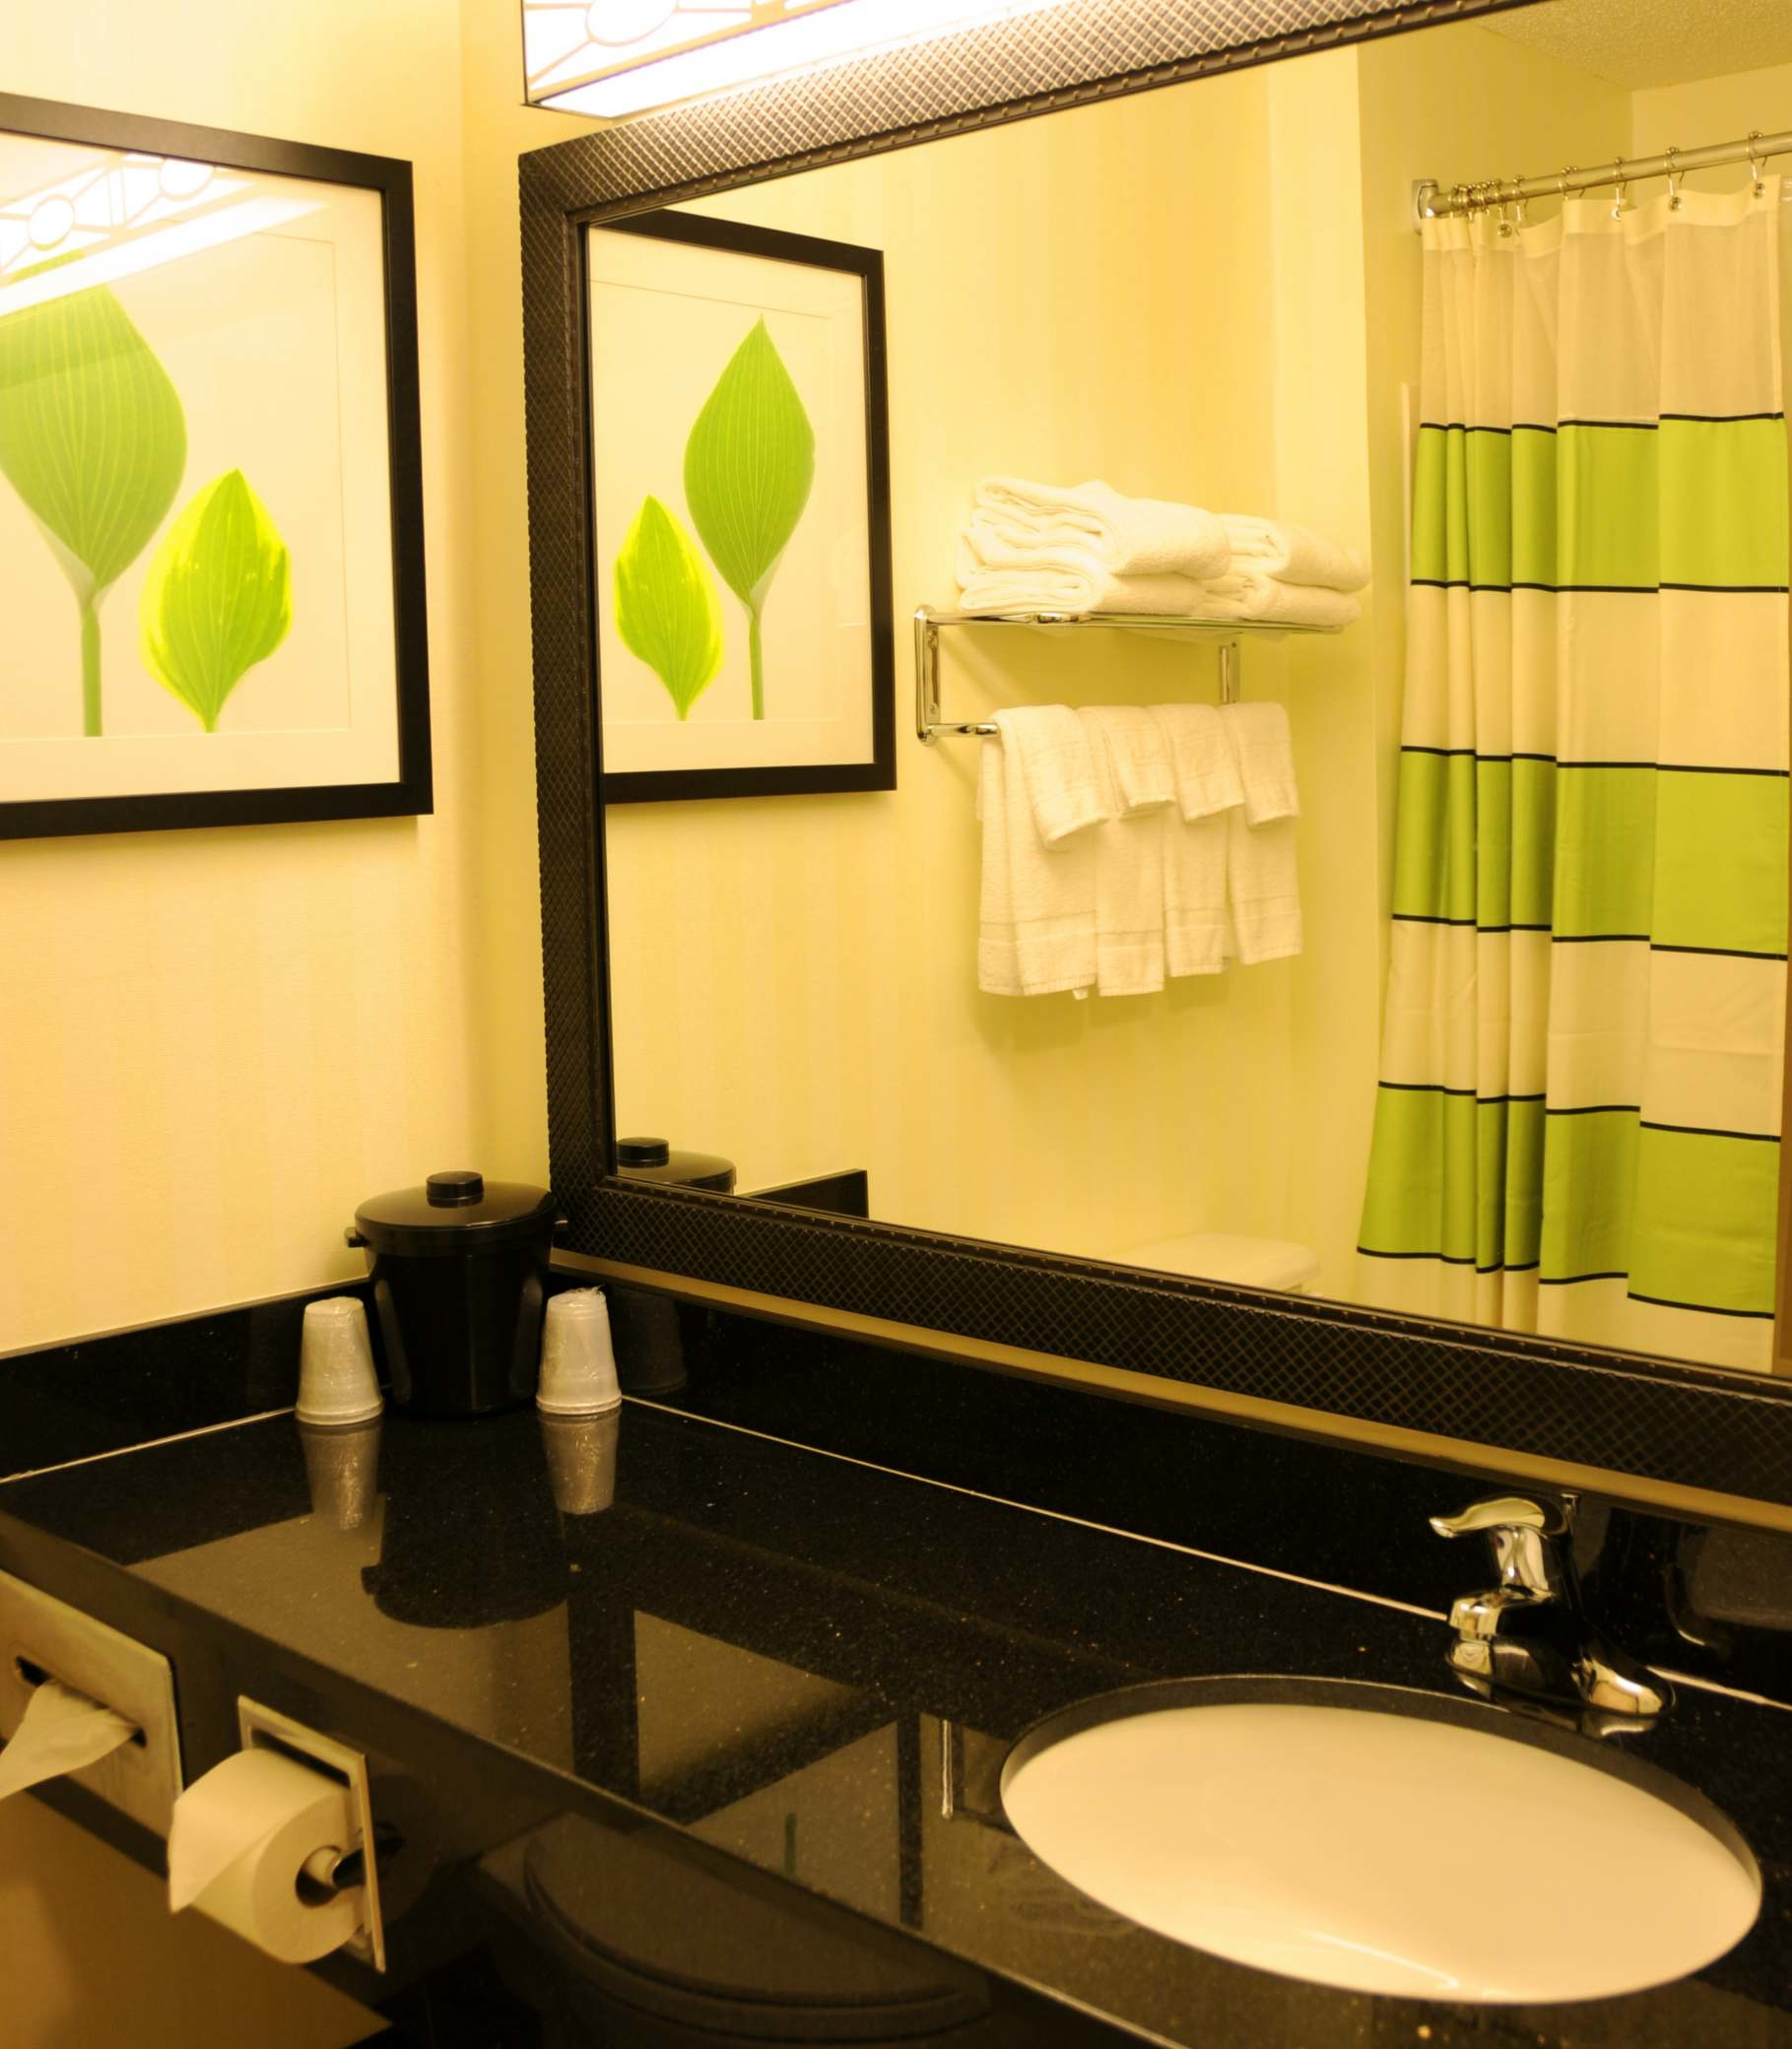 Fairfield Inn & Suites by Marriott Spearfish image 1